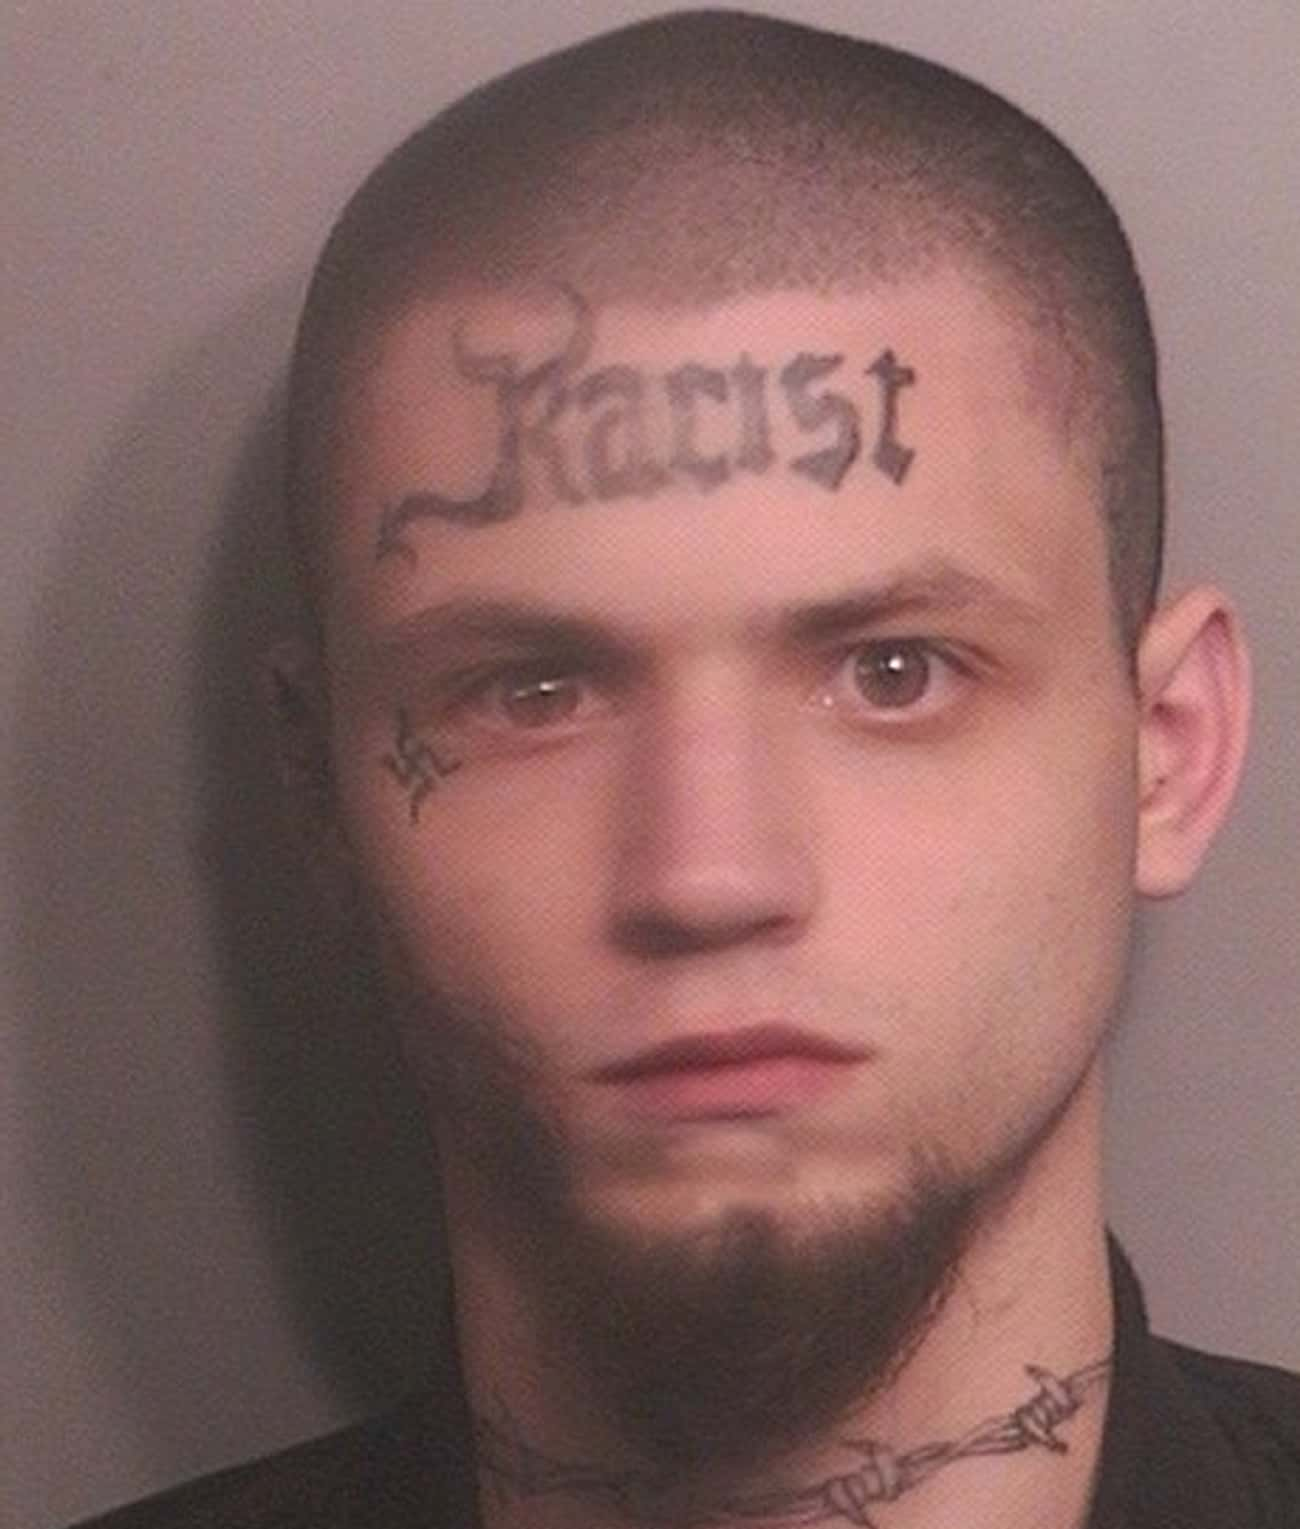 Forehead Fallacies is listed (or ranked) 2 on the list The Most Out-Of-Control Face Tattoos Captured By The Mugshot Camera